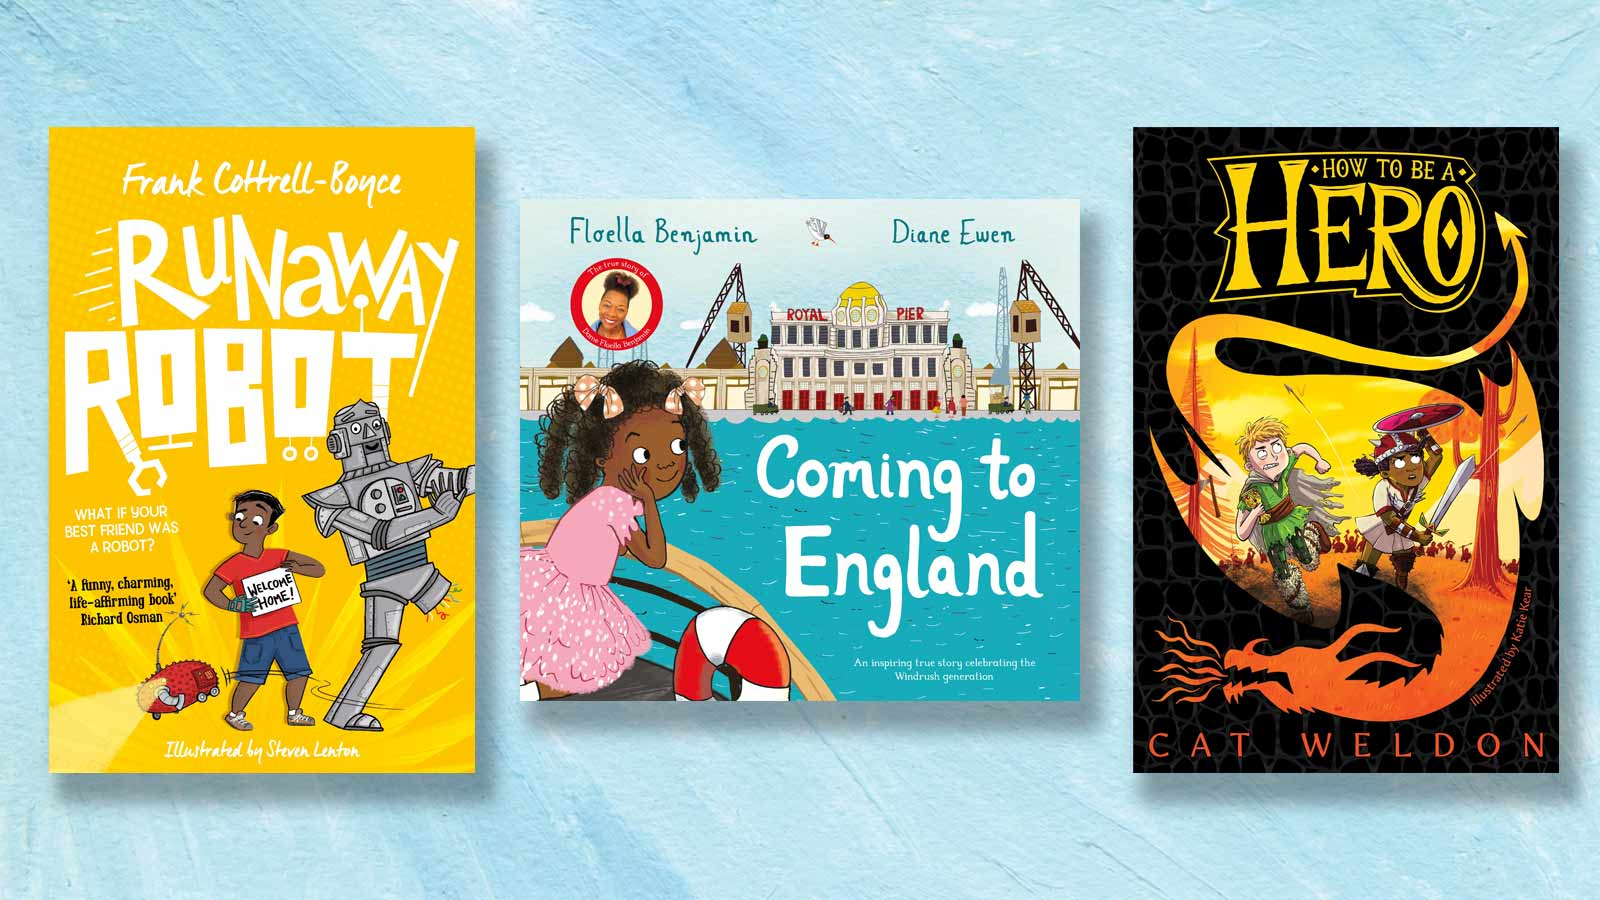 Runaway Robot, Coming to England and How to Be a Hero book covers